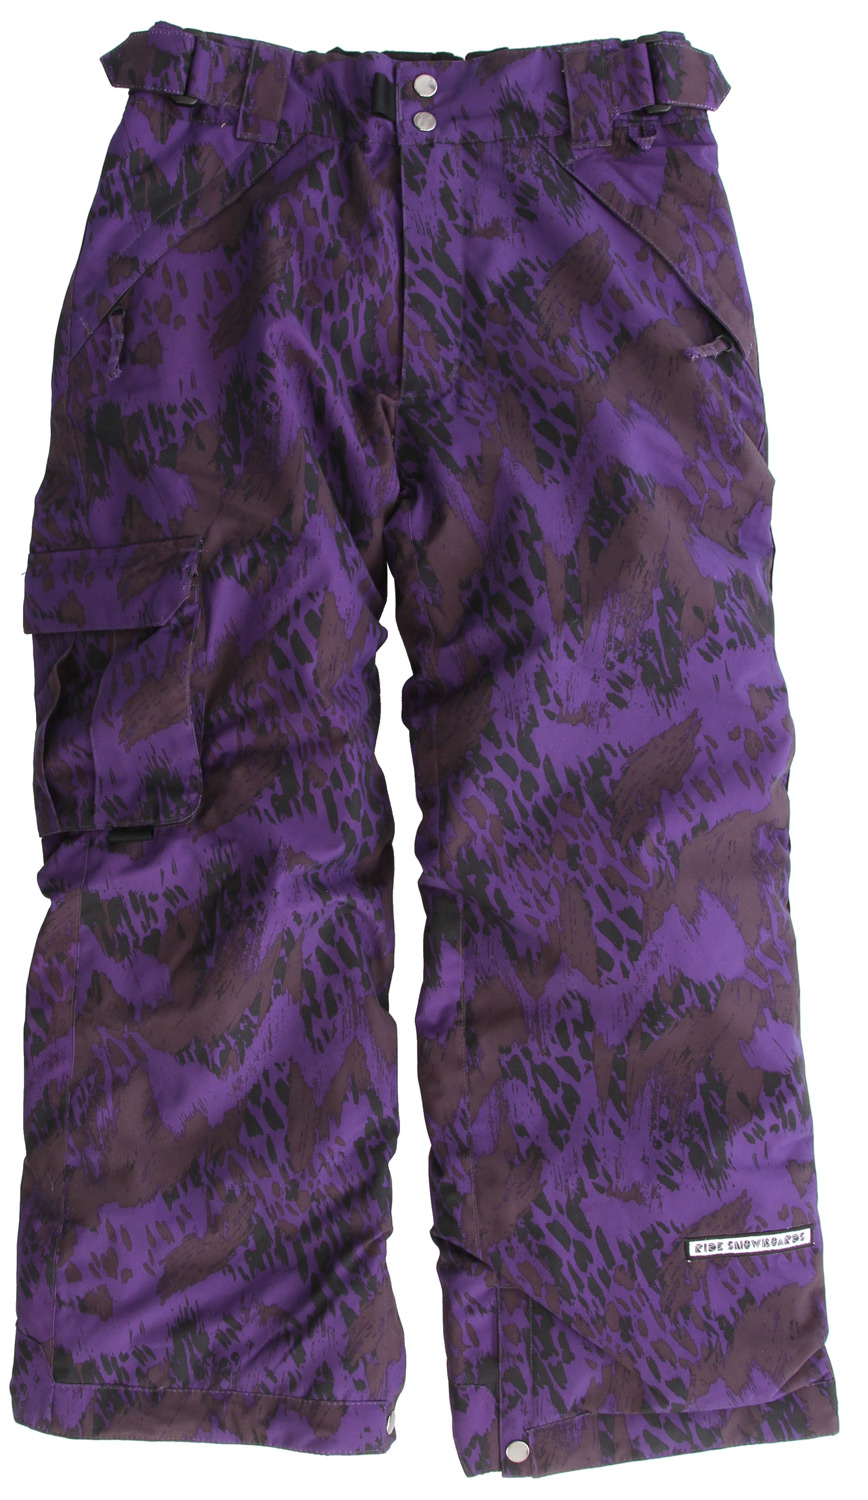 "Snowboard The Ride Dart youth snowboard pant is built tough with a 5k/5k waterproof breathable rating, Critically Taped Seams and an 80g Poly Insulation so your up-and-comer stays warm and dry, up until last chair!Key Features of the Ride Dart Snowboard Pants: 5,000mm Waterproof 5,000g Breathability 80g Poly Insulation with Taffeta Lining Side Pocket and Back Pockets Growth Seams at the Pant Hem That Extend out 1 1/2"" in Length Adjustable, Double-Snap Elastic Waist Closure Velvety Tricot Inner Waist, Butt and Fly Shred-Free Slightly Higher Pant Leg Back Boot Gaiters Lift Ticket Self-Fabric Loop Kids' snowboard pant with front Micro-Fleece Lined Toaster Pockets - $76.95"